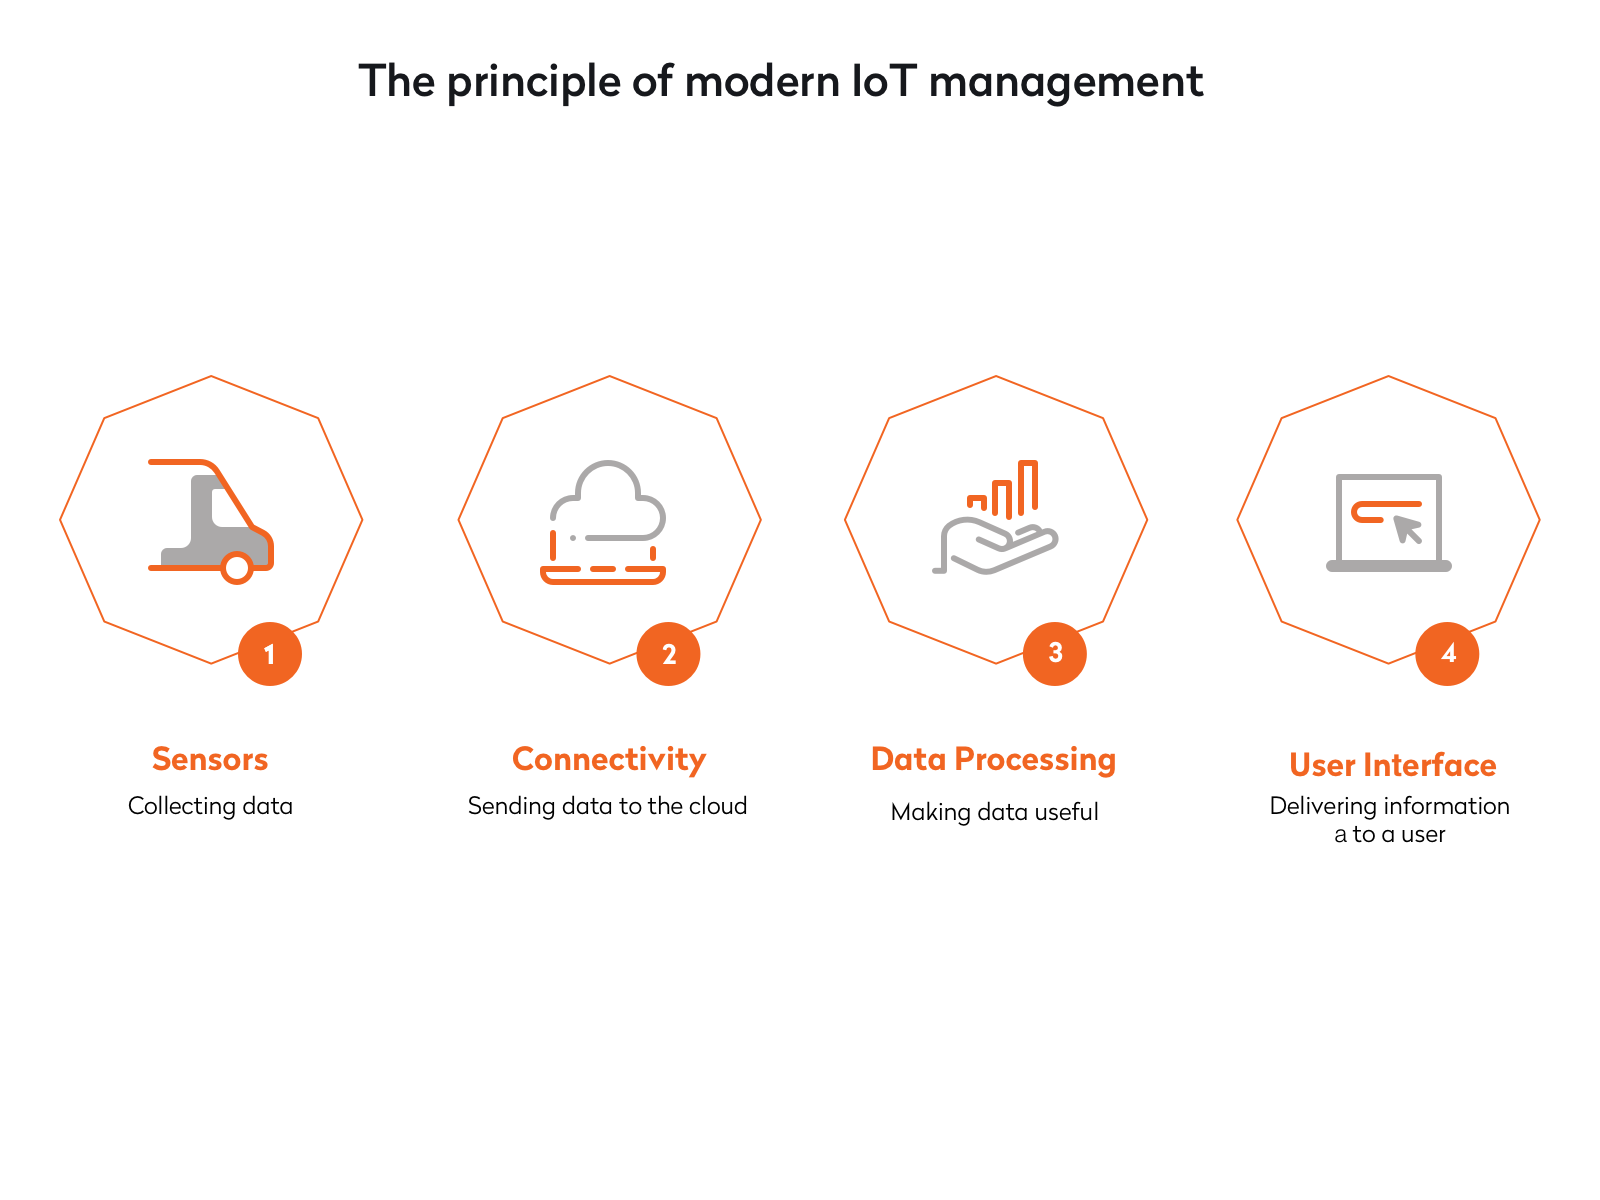 the principle of modern iot management